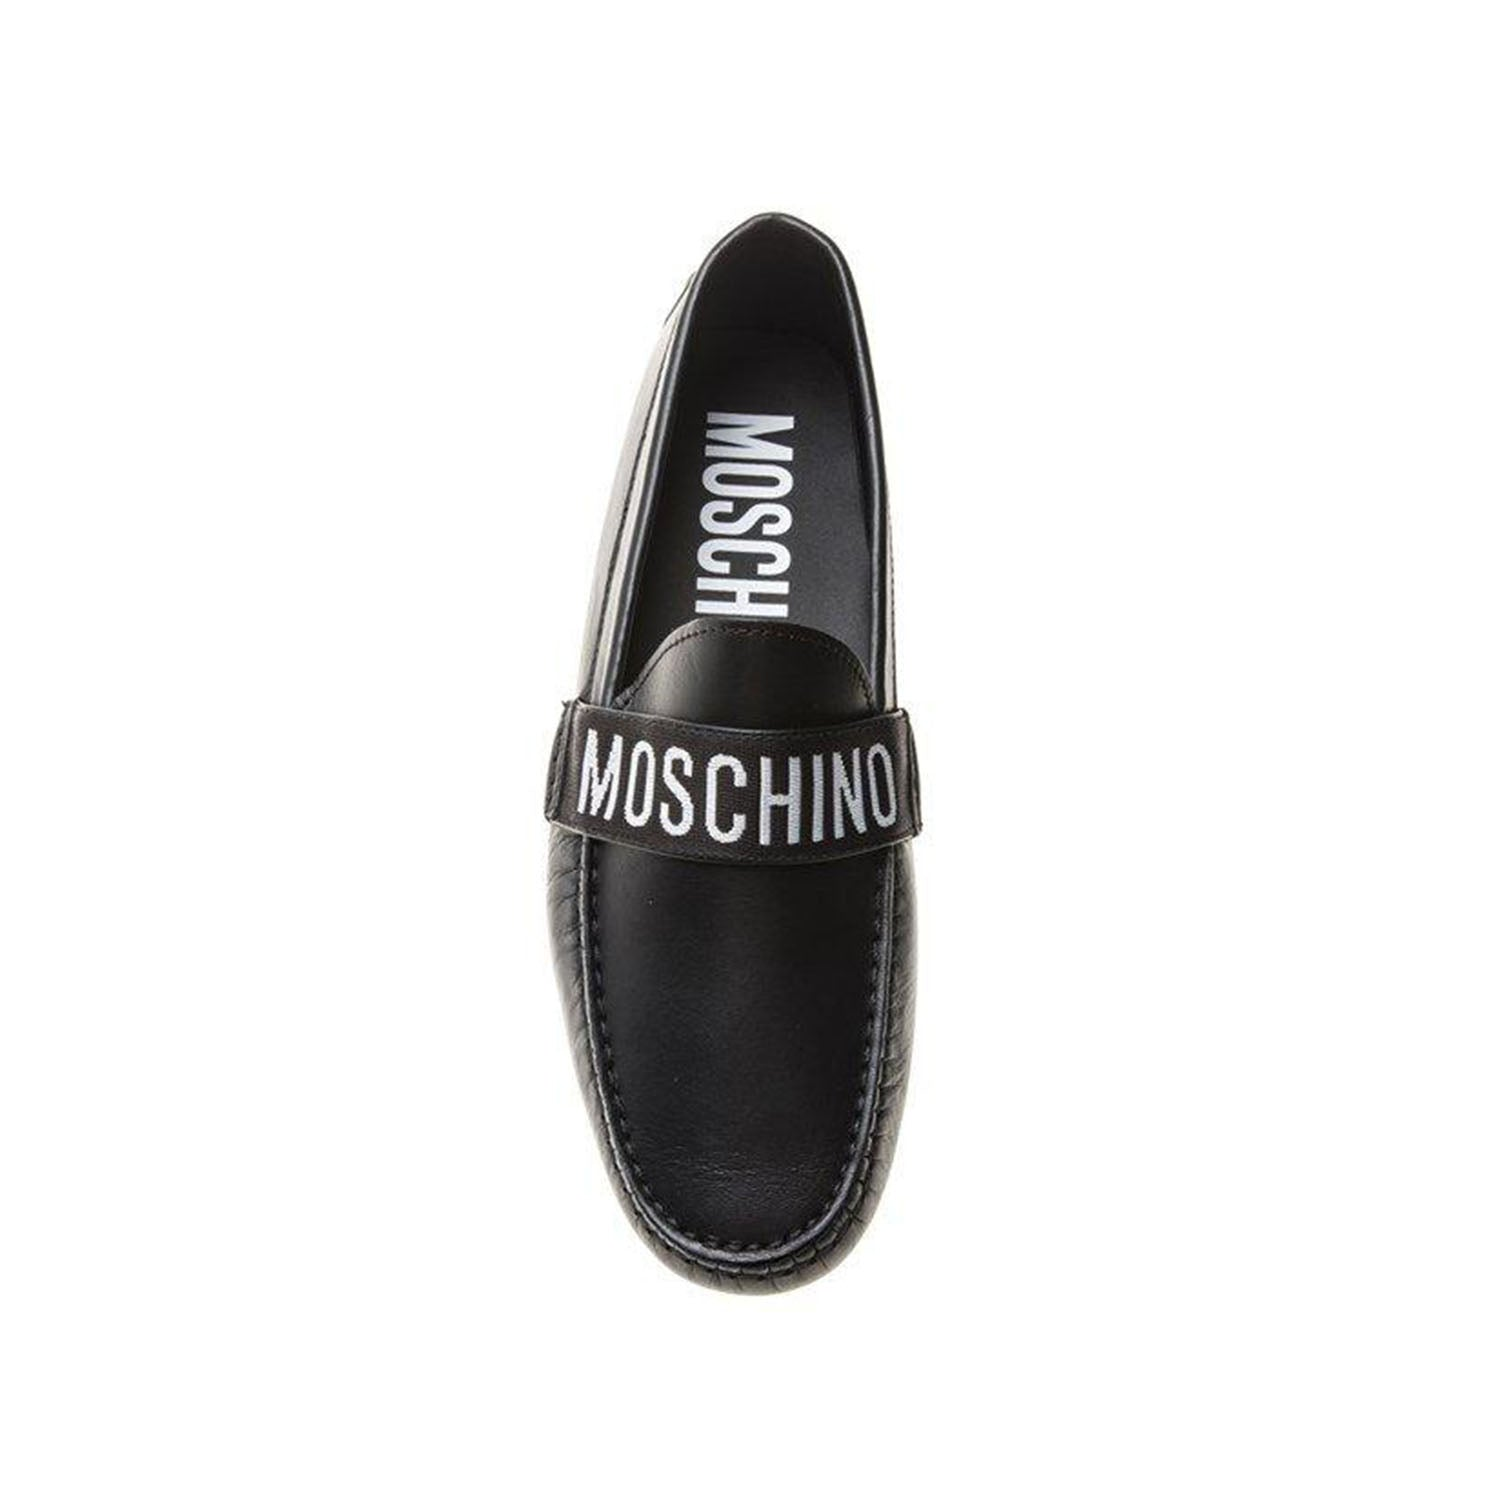 Moschino Logo Loafers